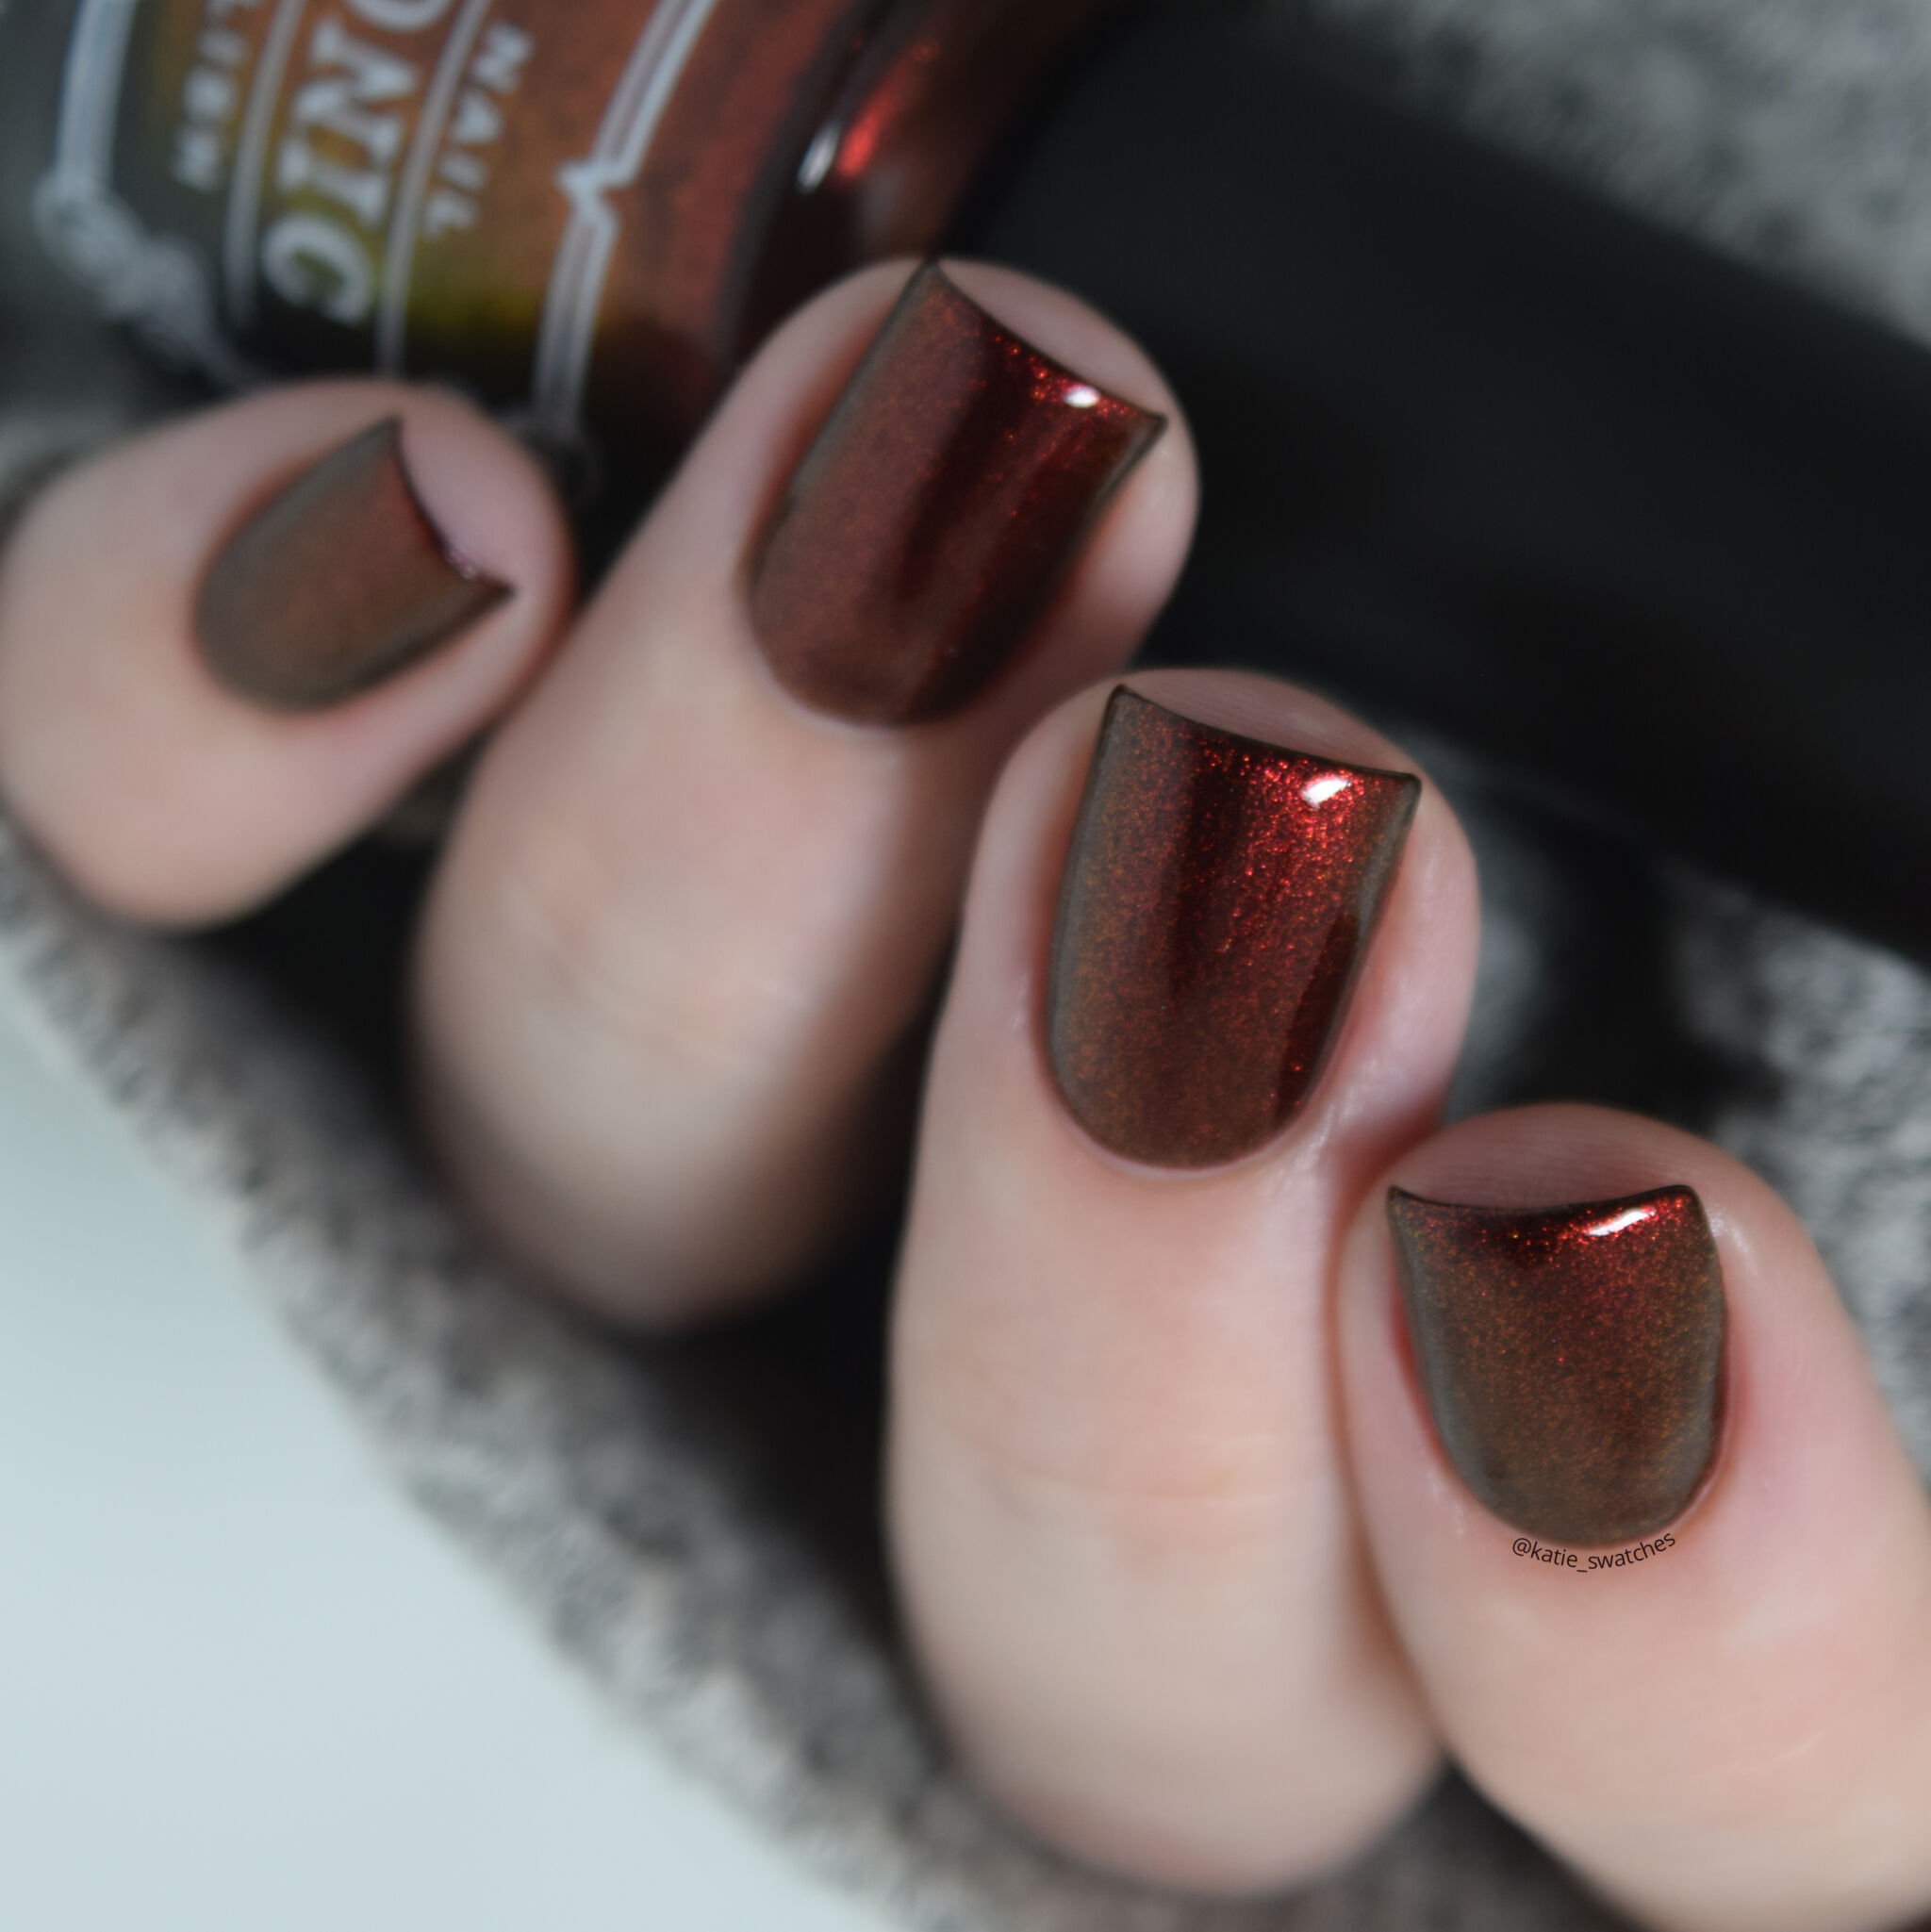 Tonic Polish - Blood On My Hands red to gold-green duochrome nail polish swatch from the Tonic Polish Fall 2019 Collection